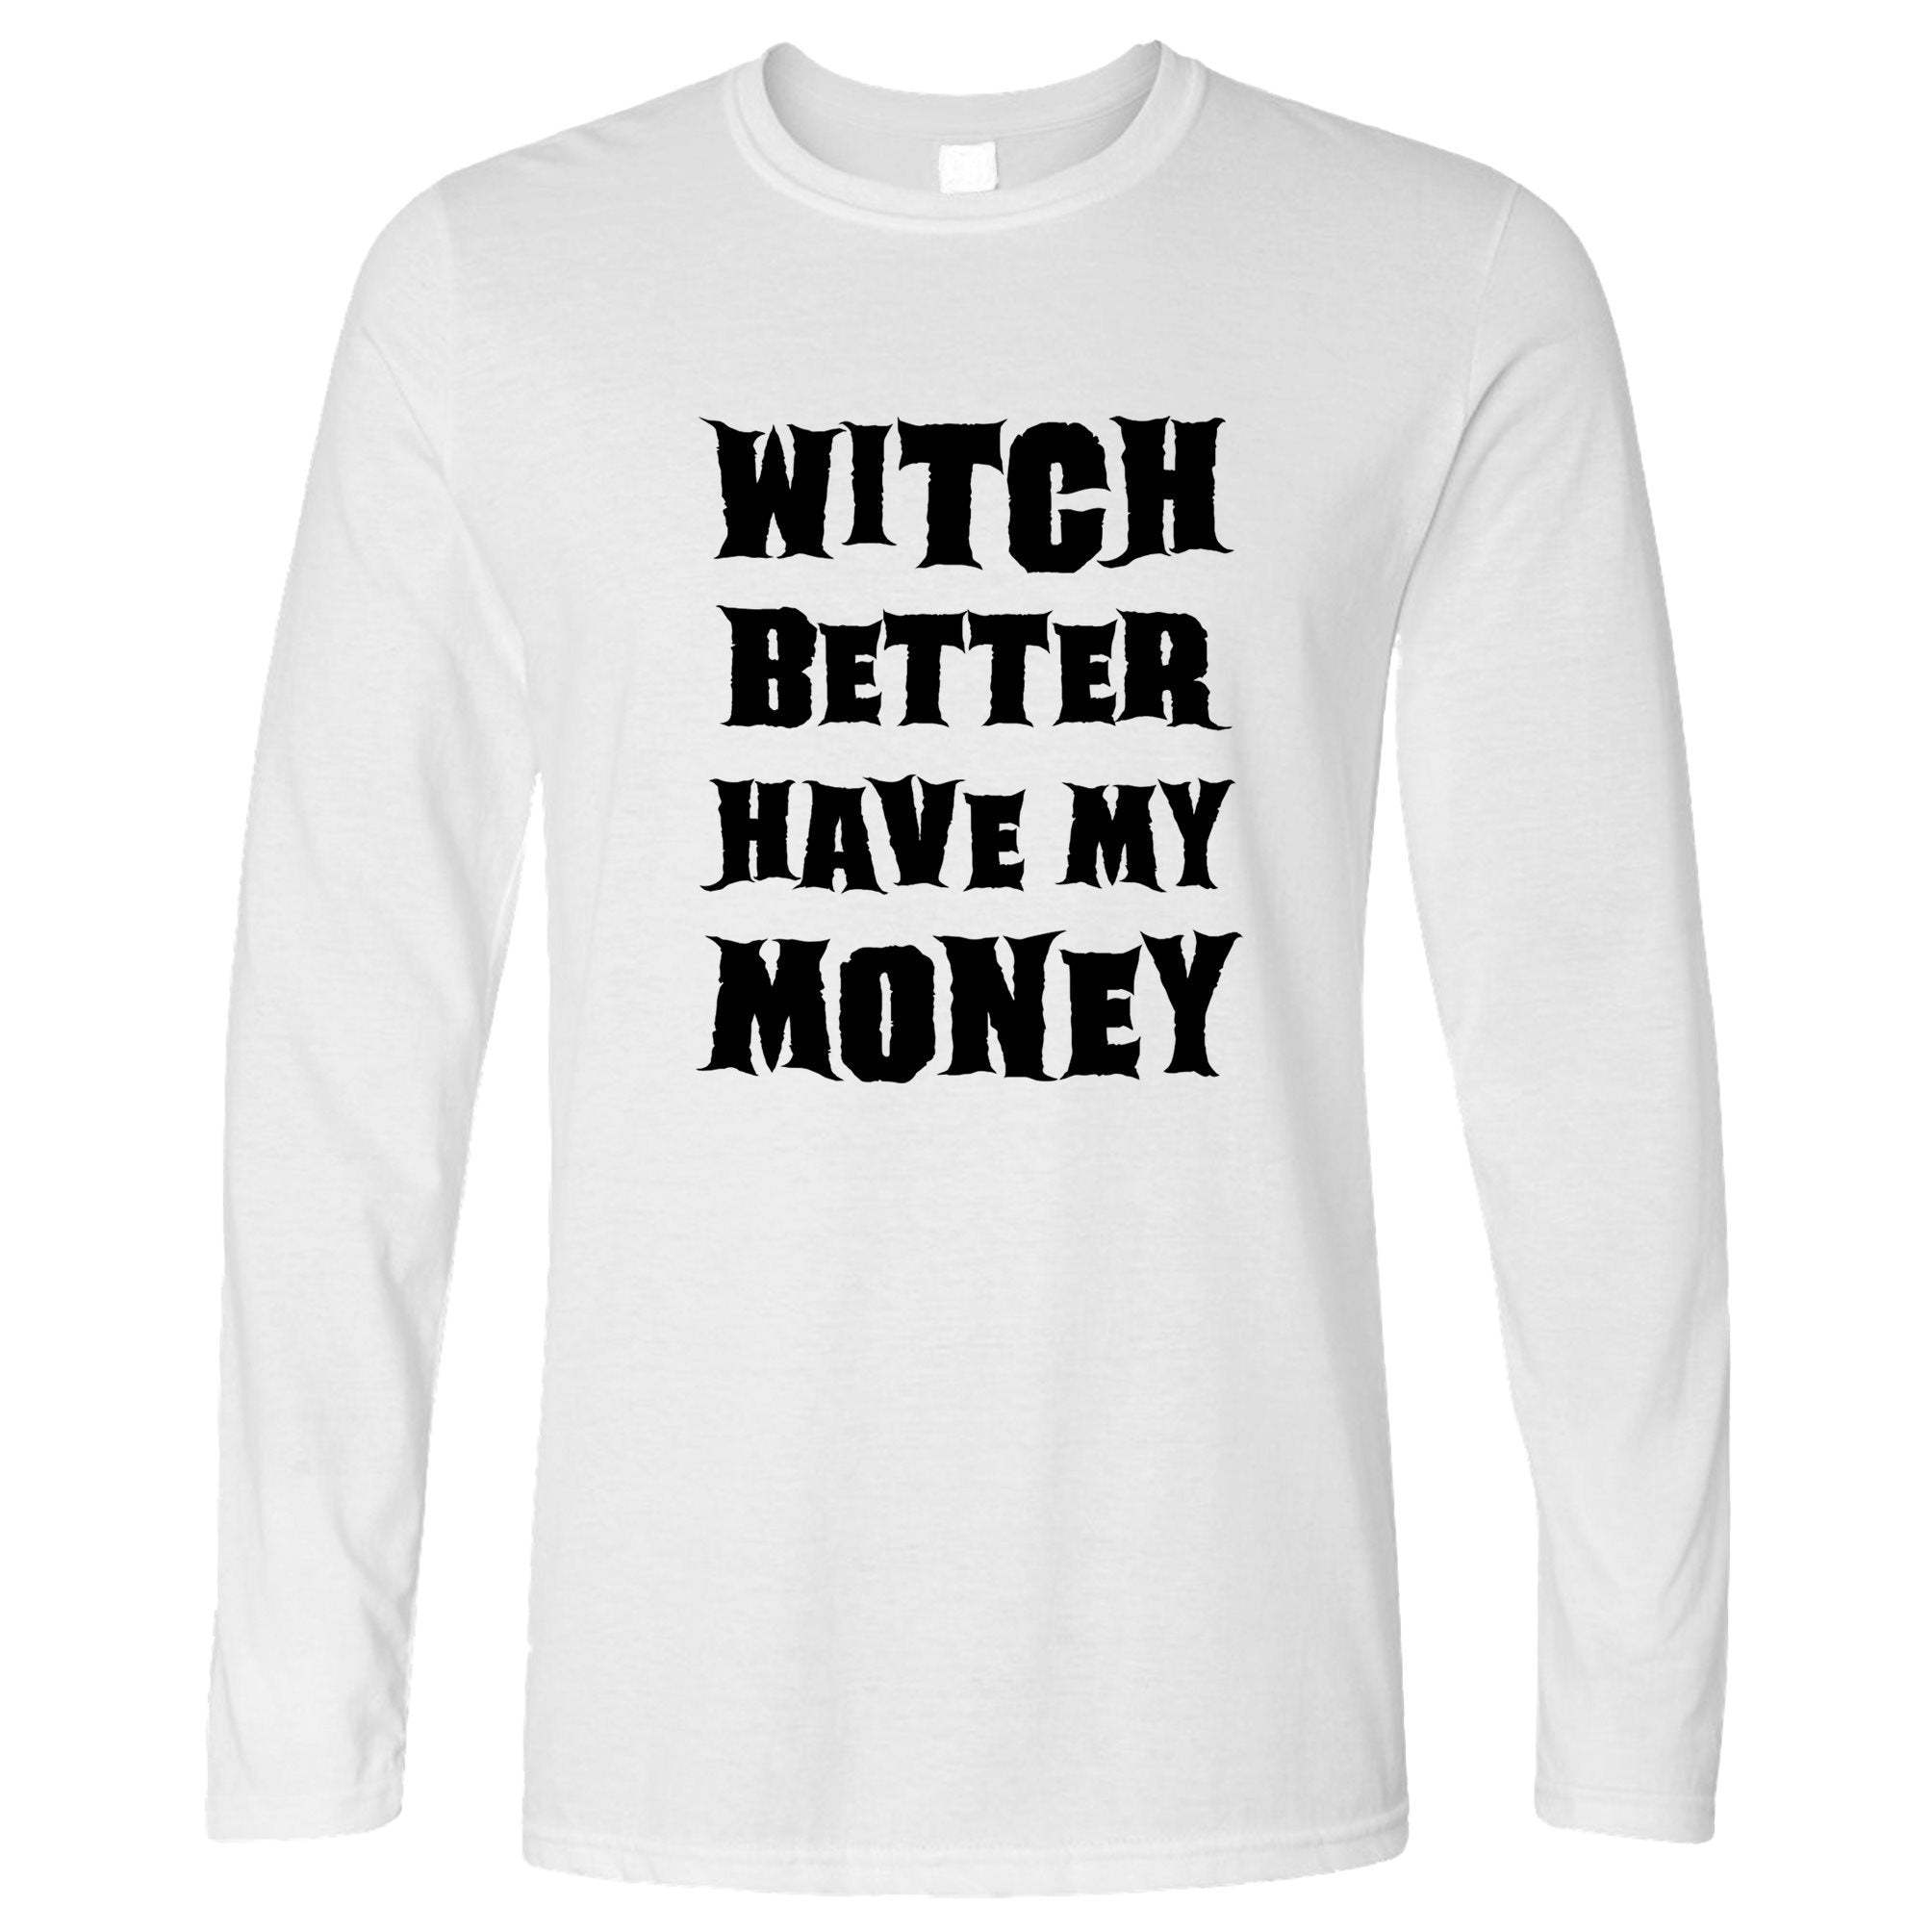 Halloween Long Sleeve Witch Better Have My Money T-Shirt